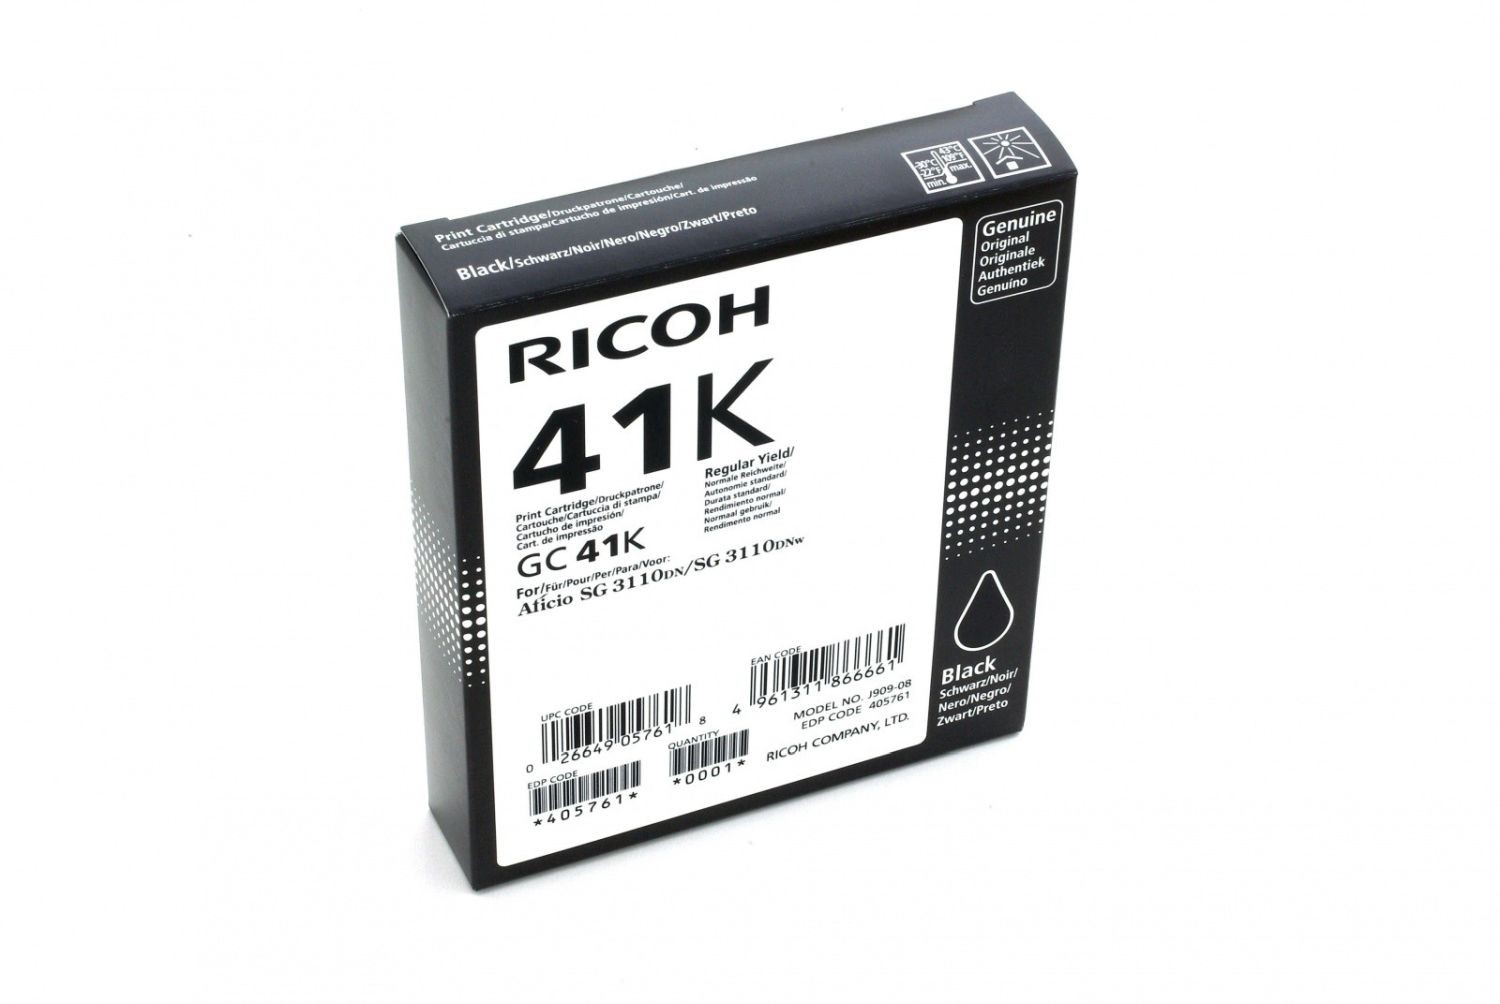 Ricoh Print Cartridge GC 41K